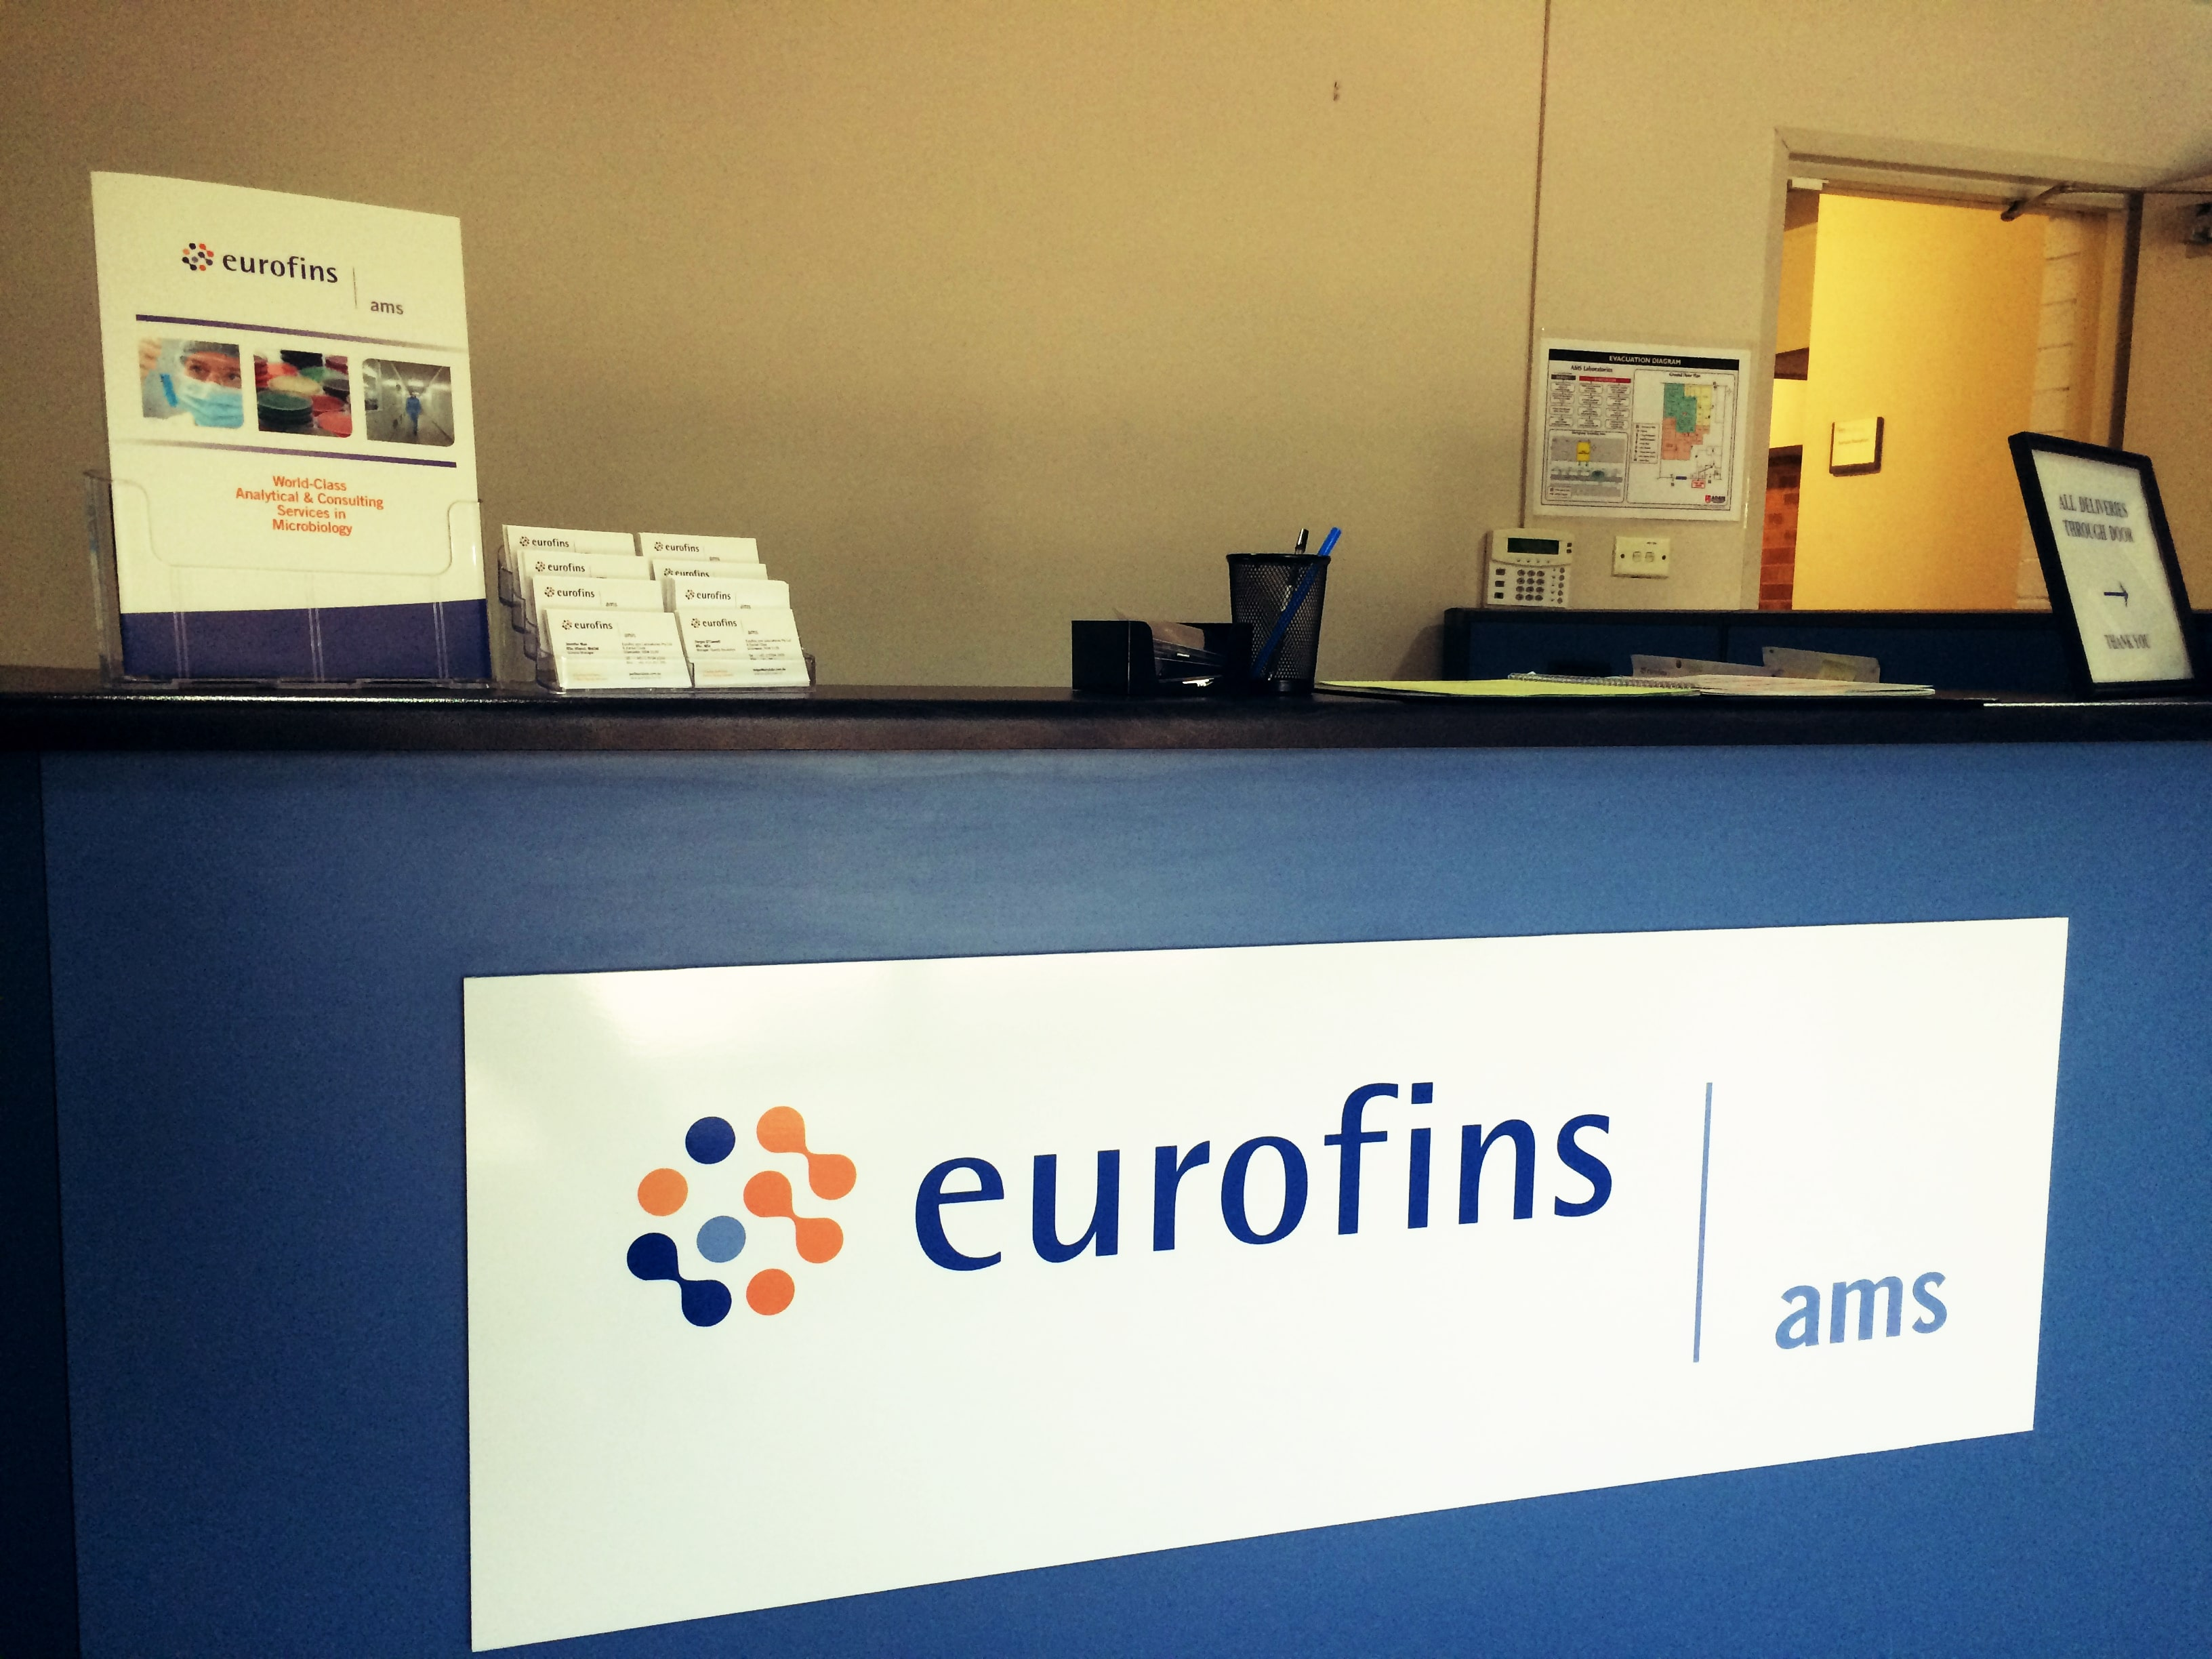 Eurofins ams Counter Sign